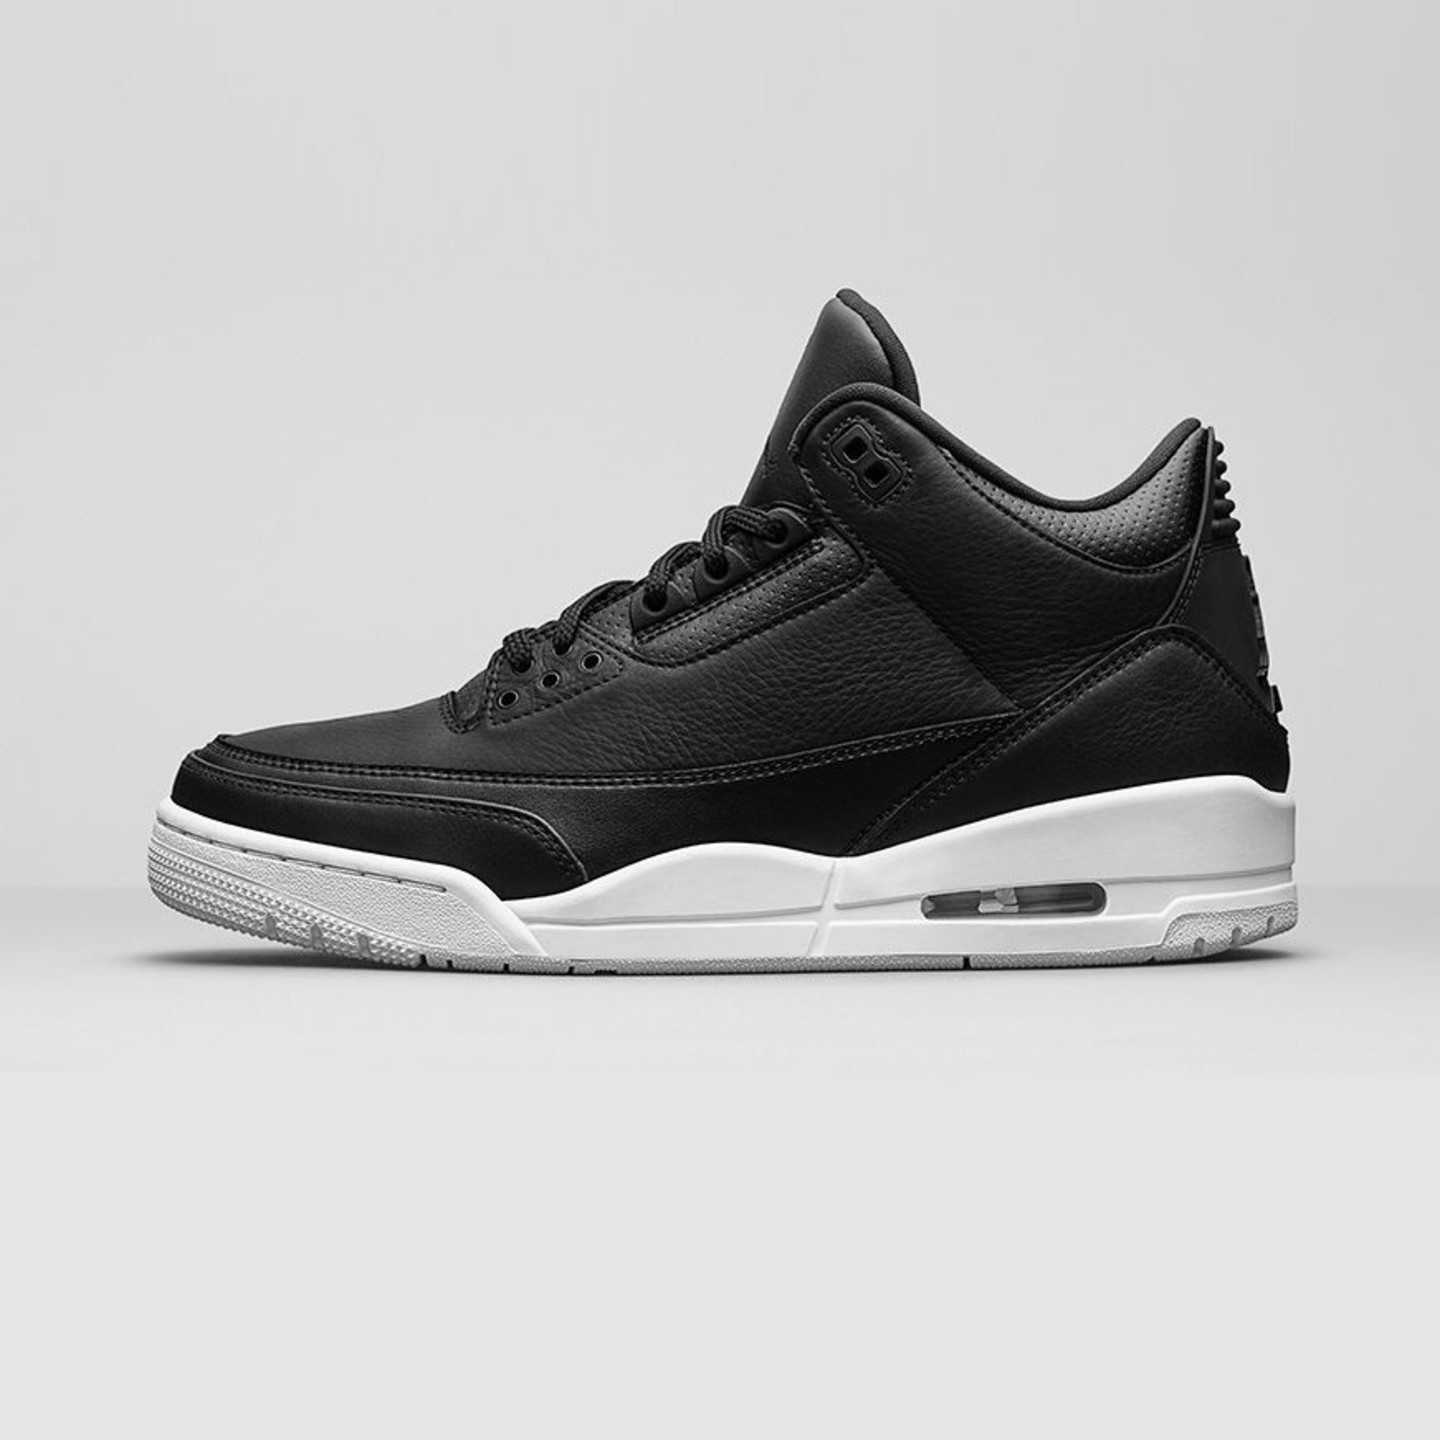 Jordan Air Jordan 3 Retro 'Cyber Monday' Black / White 136064-020-46